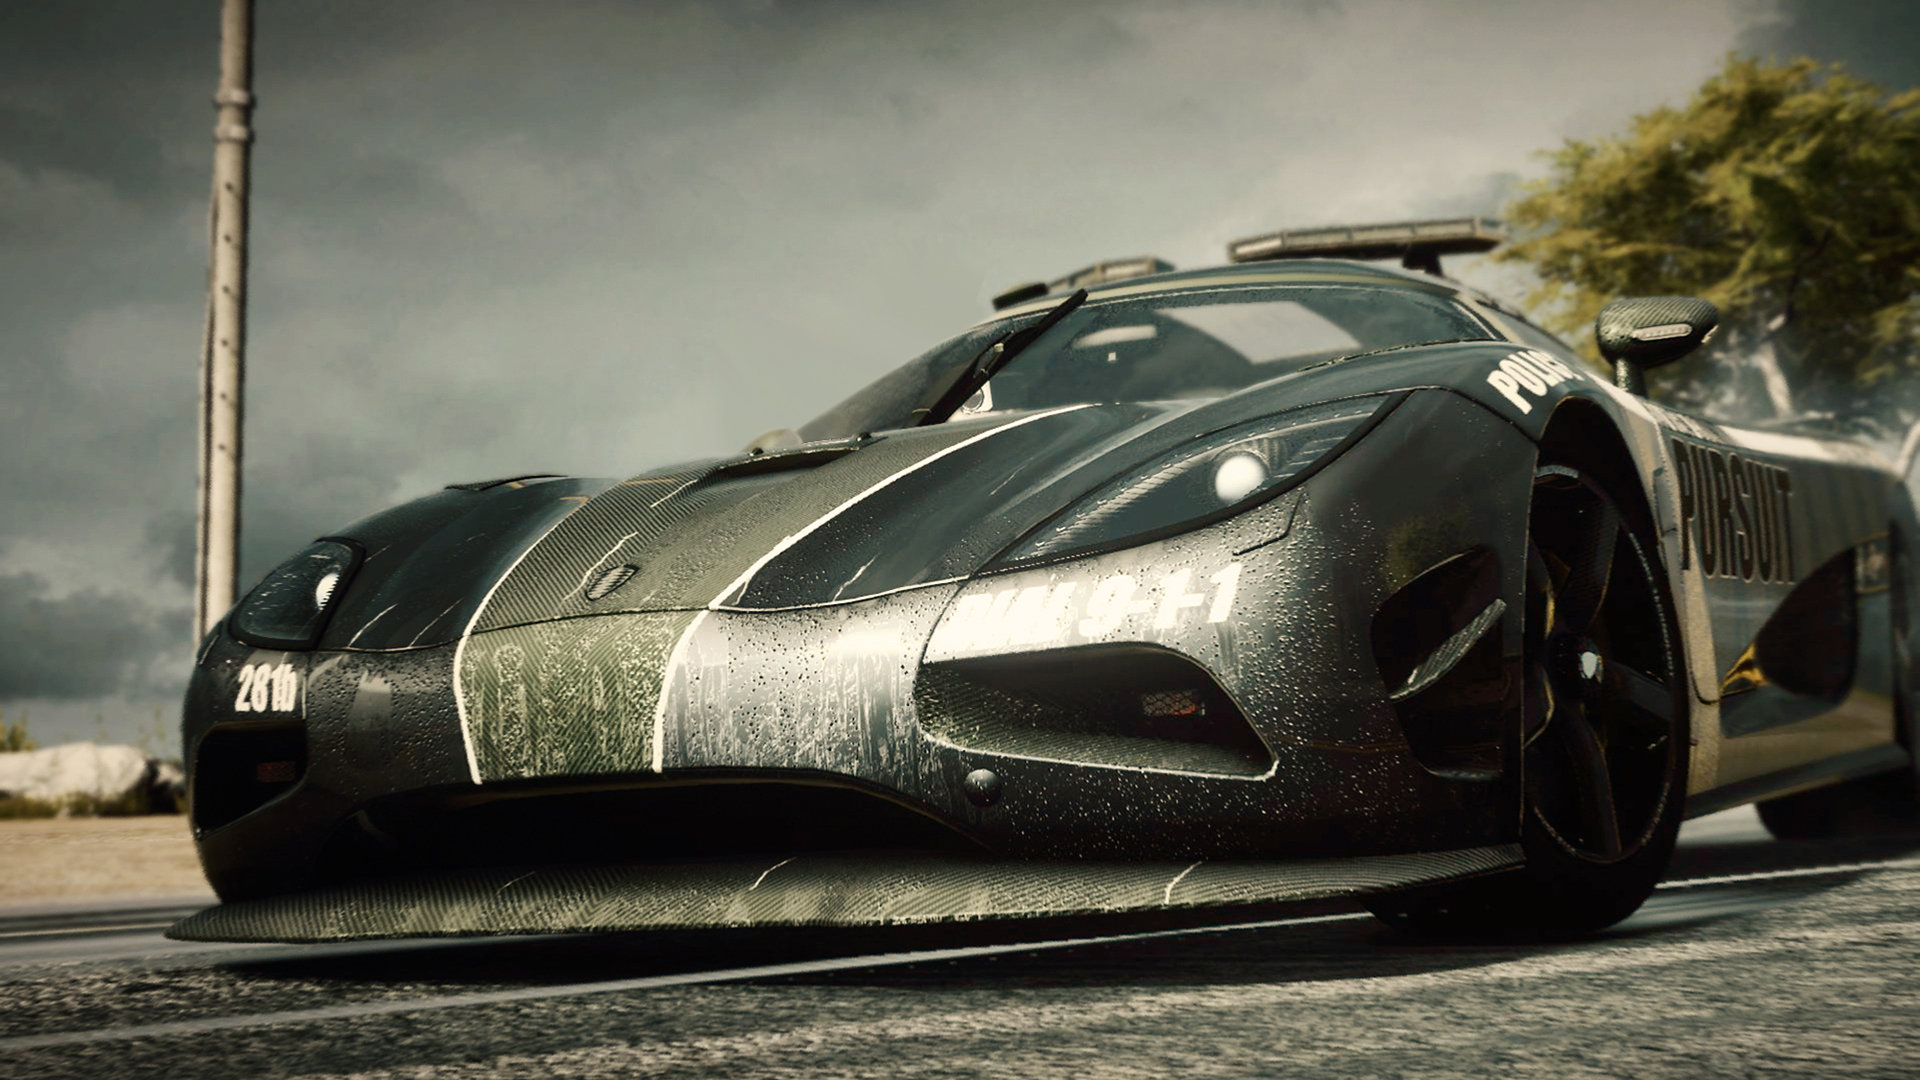 Senetle PS4 Need for Speed Rivals araba yarışı oyunu-mutluevim.com.tr